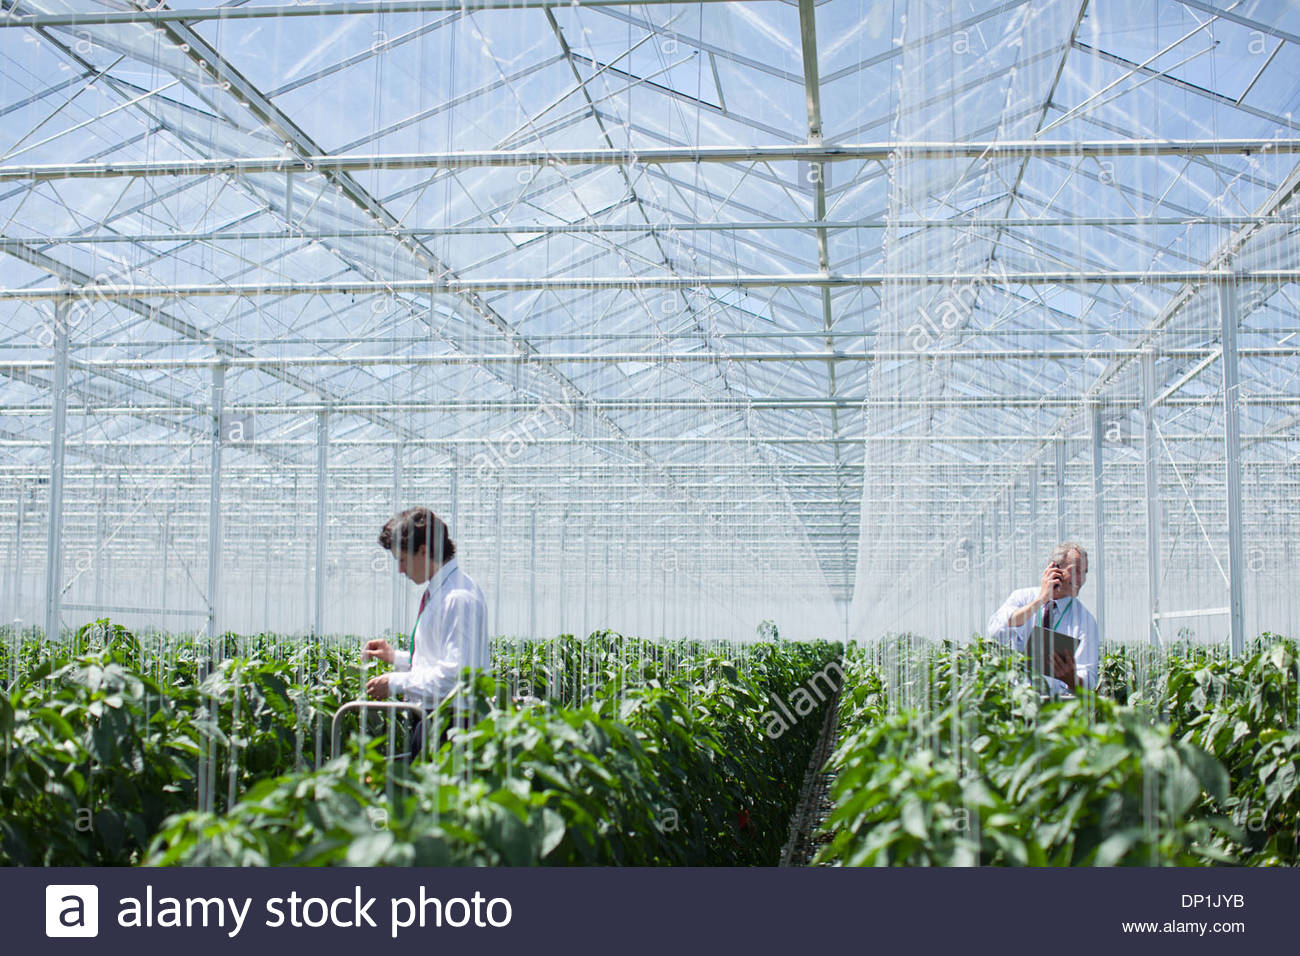 Scientists examining produce in greenhouse - Stock Image